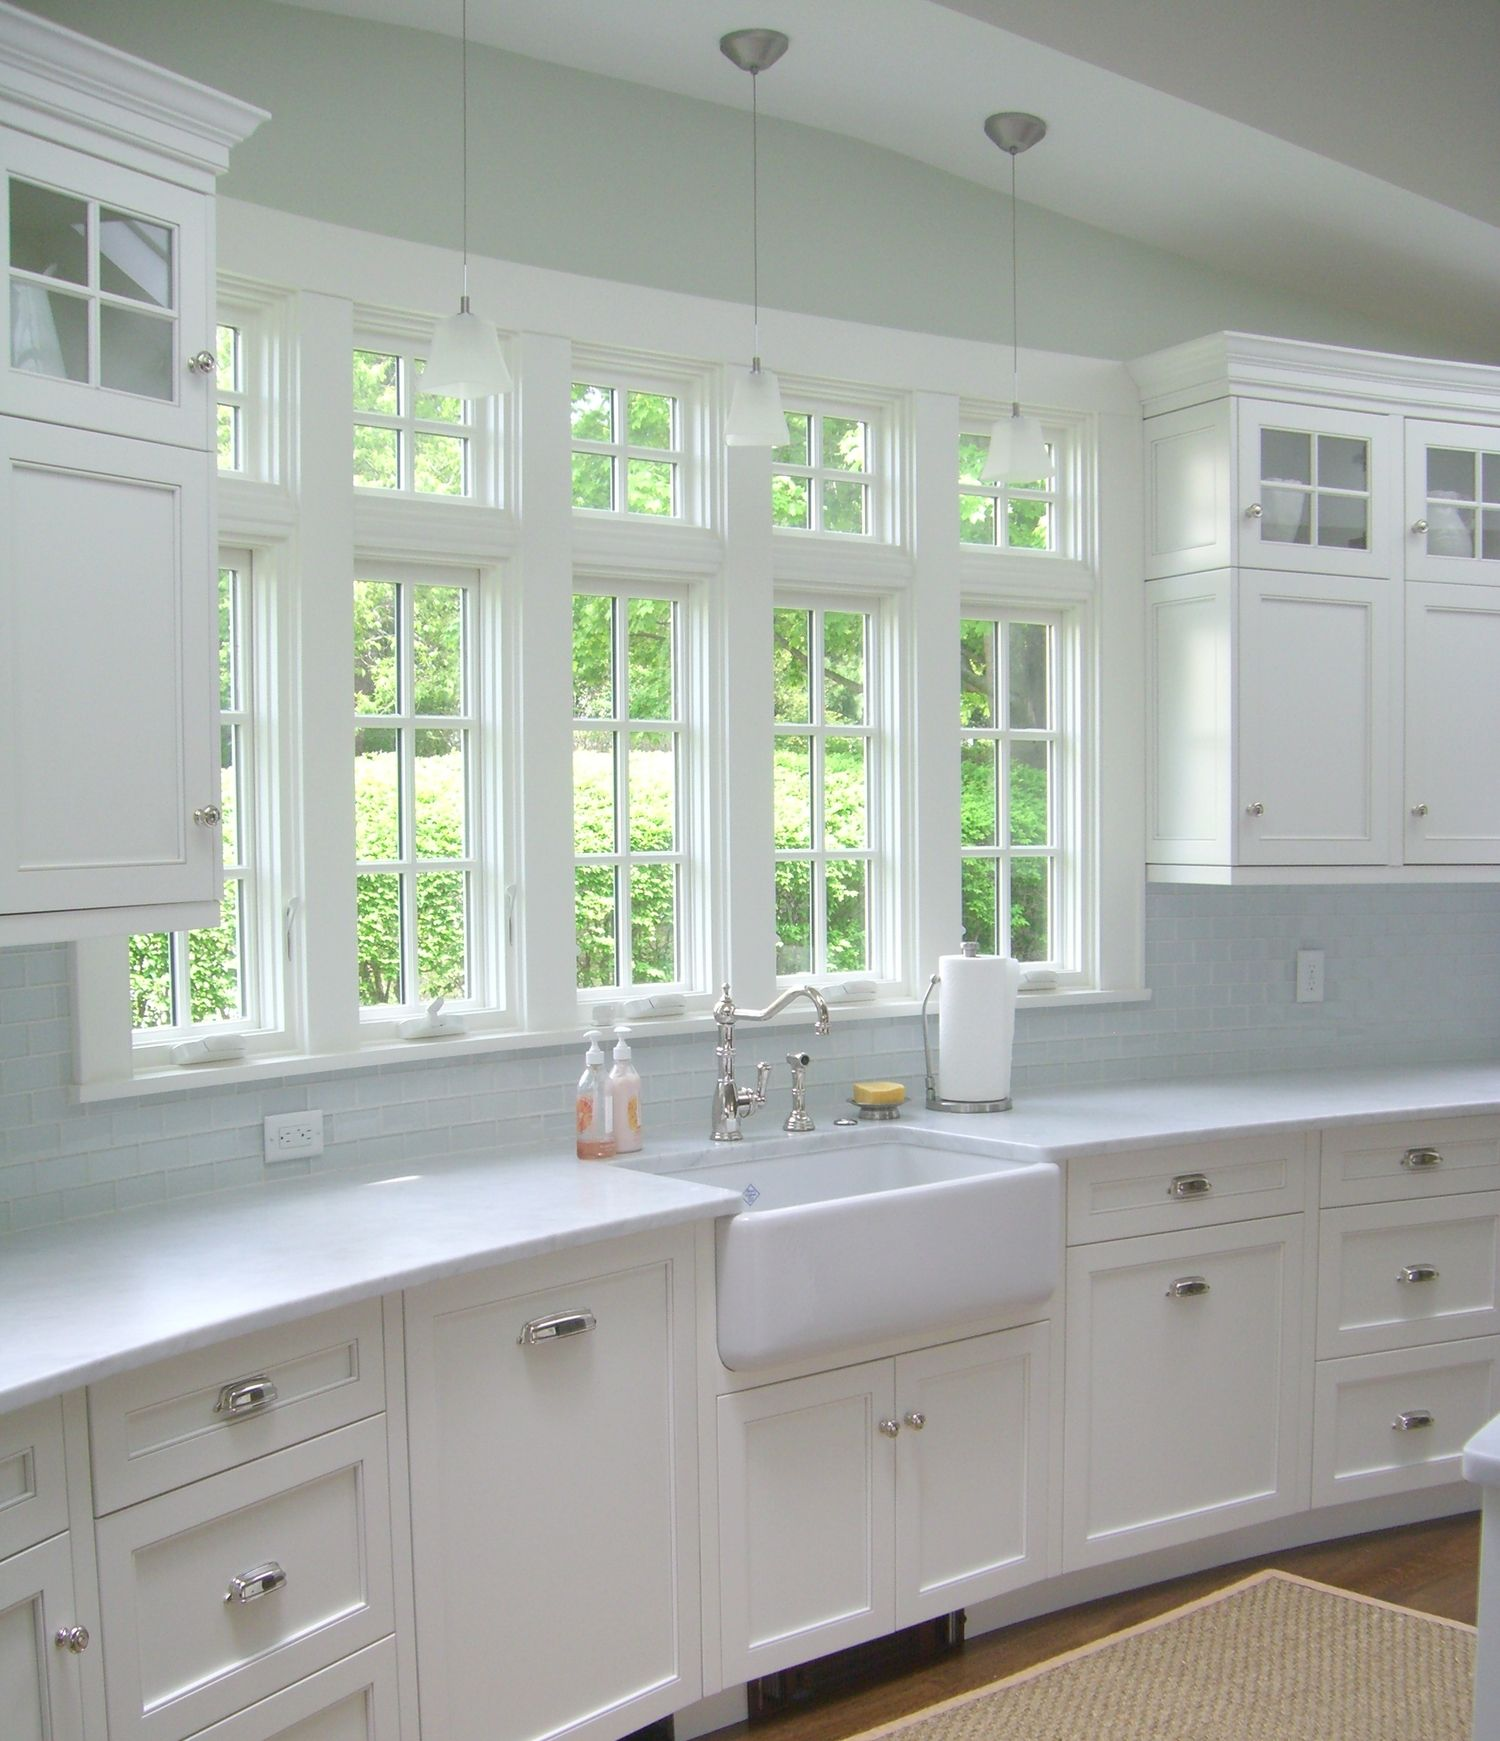 Kitchen Sink With Backsplash: Love The Windows And Farmhouse Sink. Not So Much On The